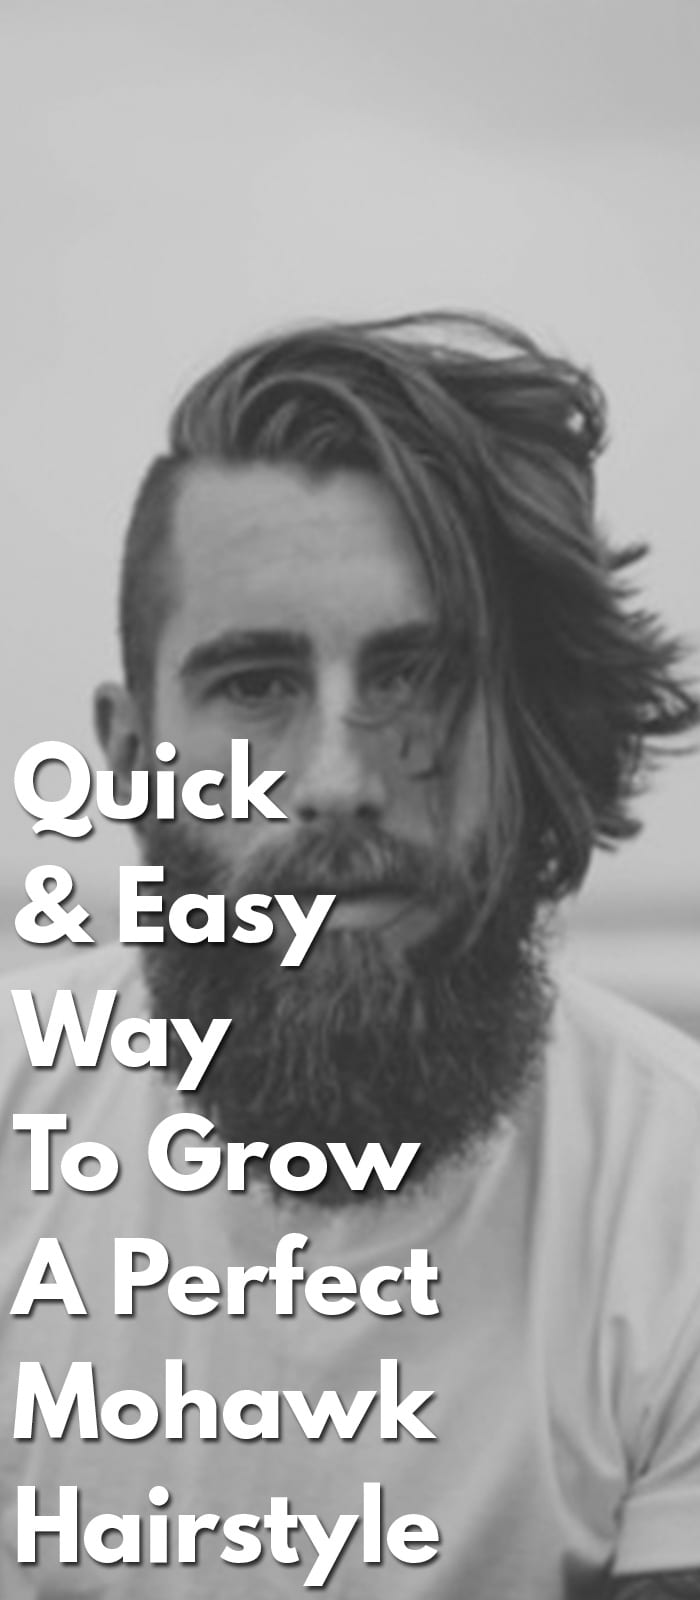 Quick-&-Easy-Way-To-Grow-A-Perfect-Mohawk-Hairstyle.